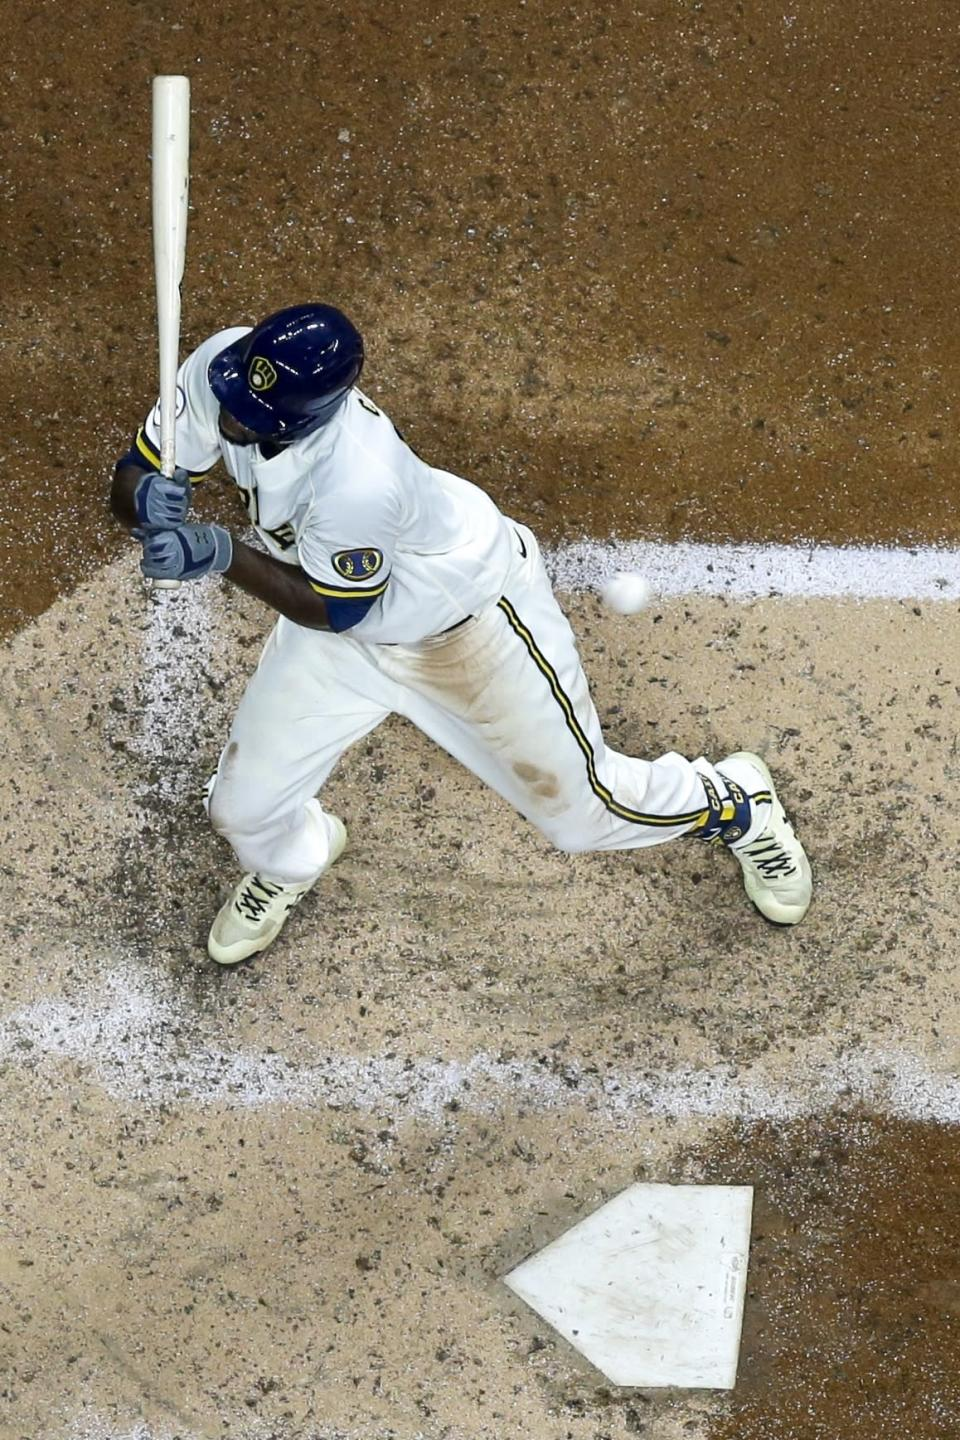 Milwaukee Brewers' Lorenzo Cain is hit by a pitch during the sixth inning of a baseball game against the St. Louis Cardinals Wednesday, May 12, 2021, in Milwaukee. (AP Photo/Morry Gash)